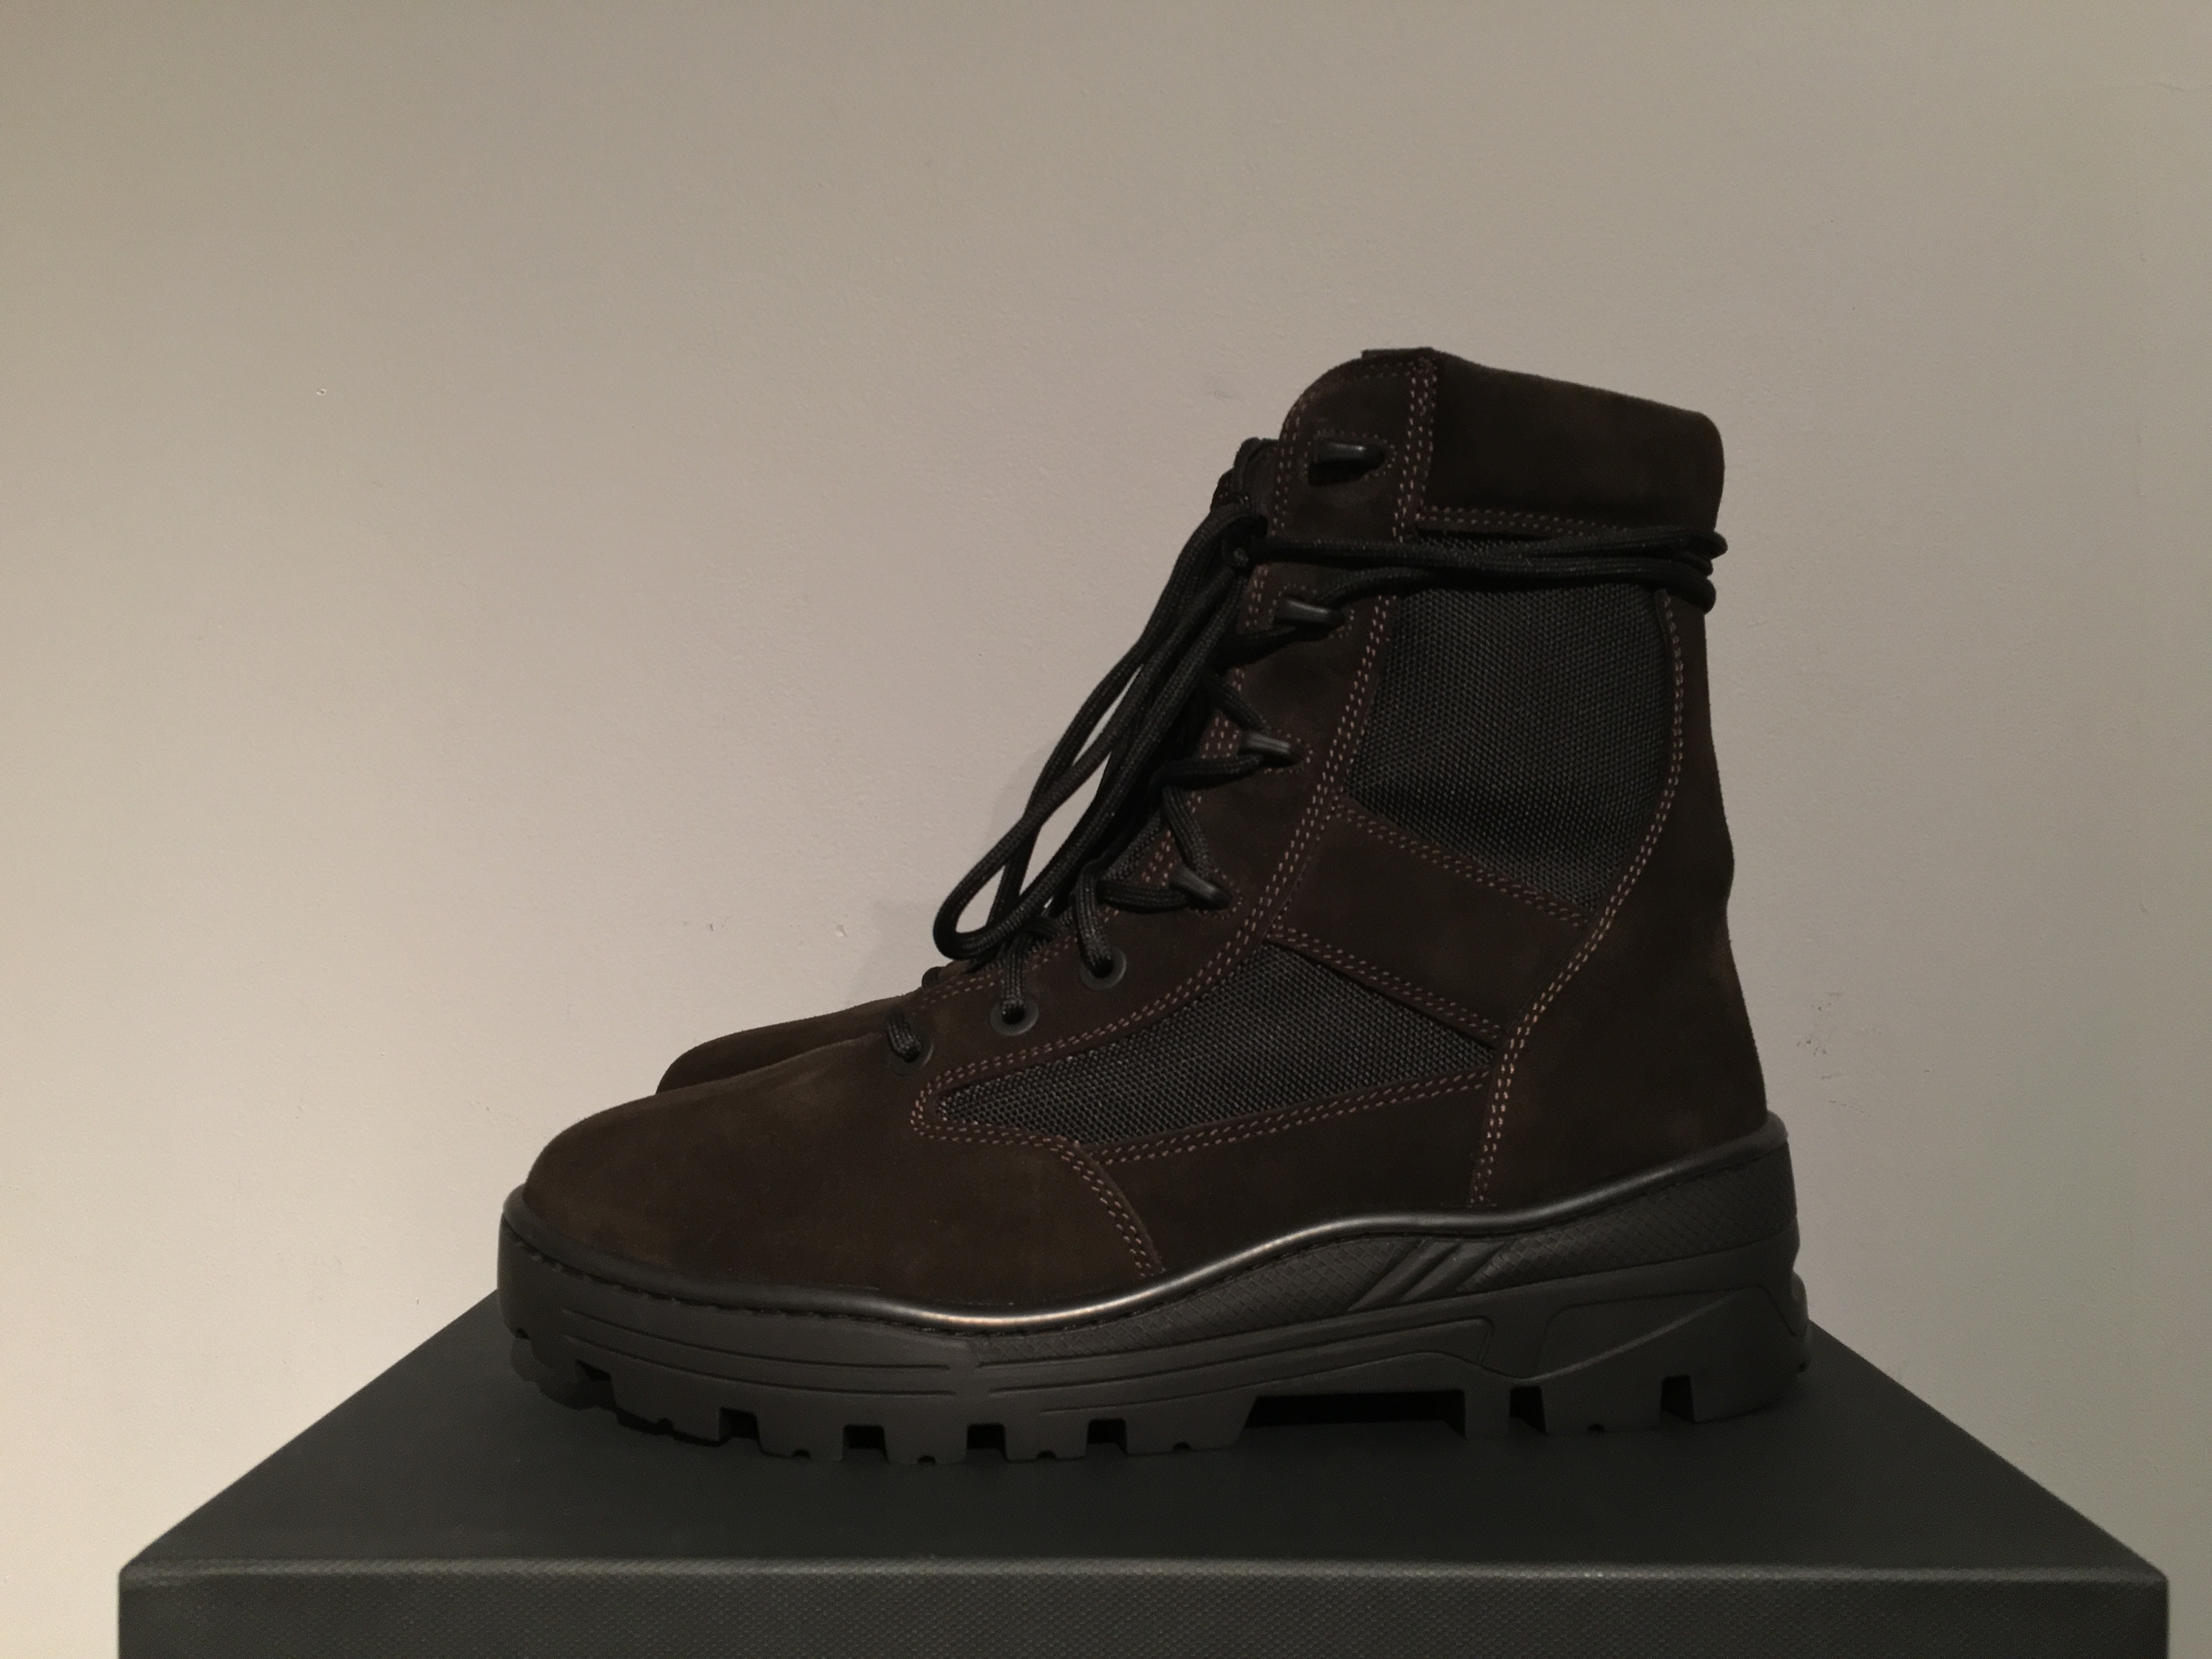 ae81a15eb83 Yeezy Season Season 4 Combat Boot in Oil Size 10 - Boots for Sale ...